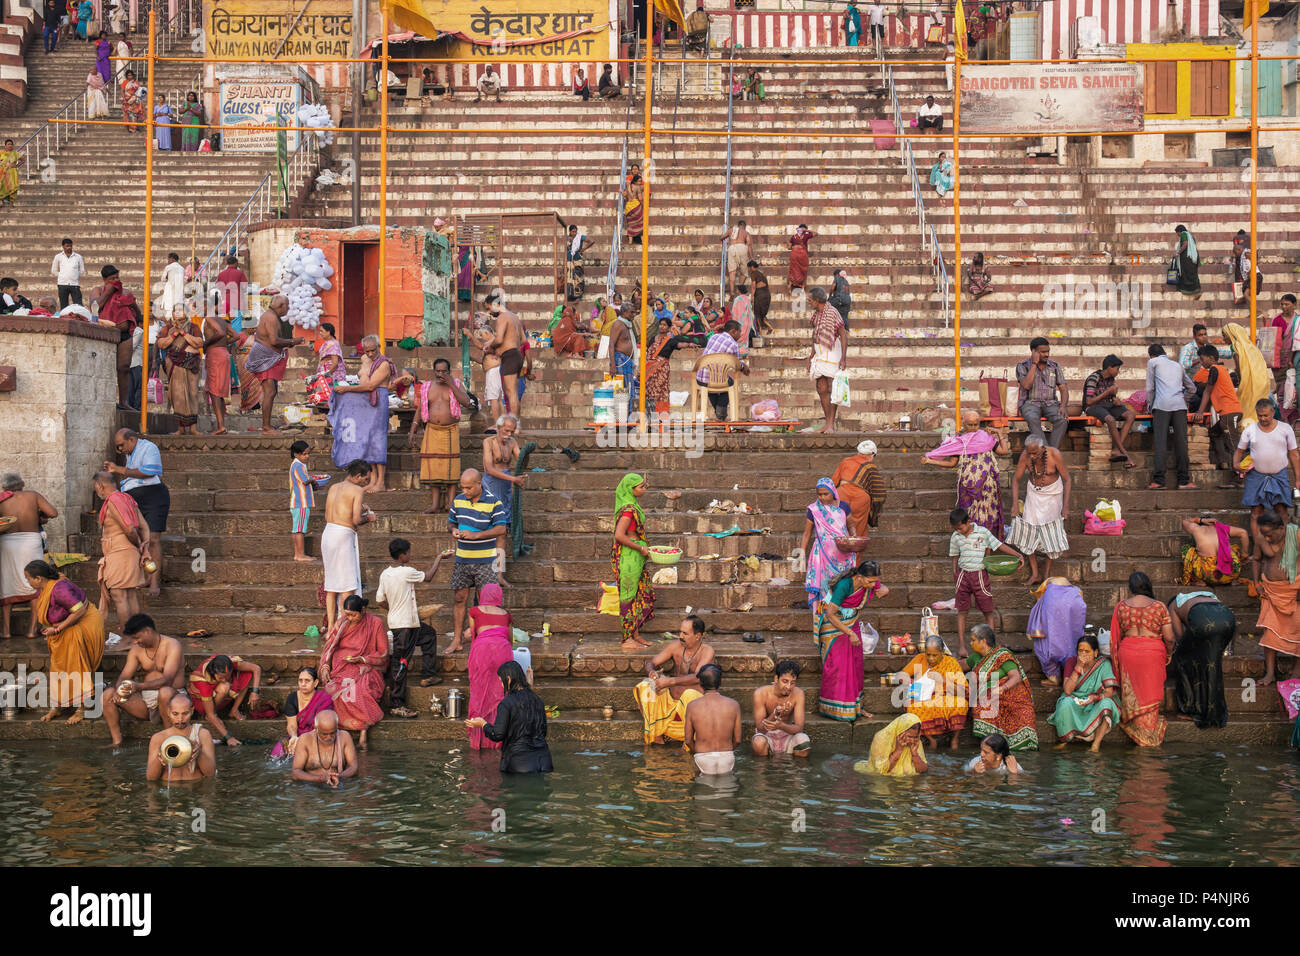 Unidentified people taking ritual bath in the river Gangain the holy city of Varanasi, India. Stock Photo